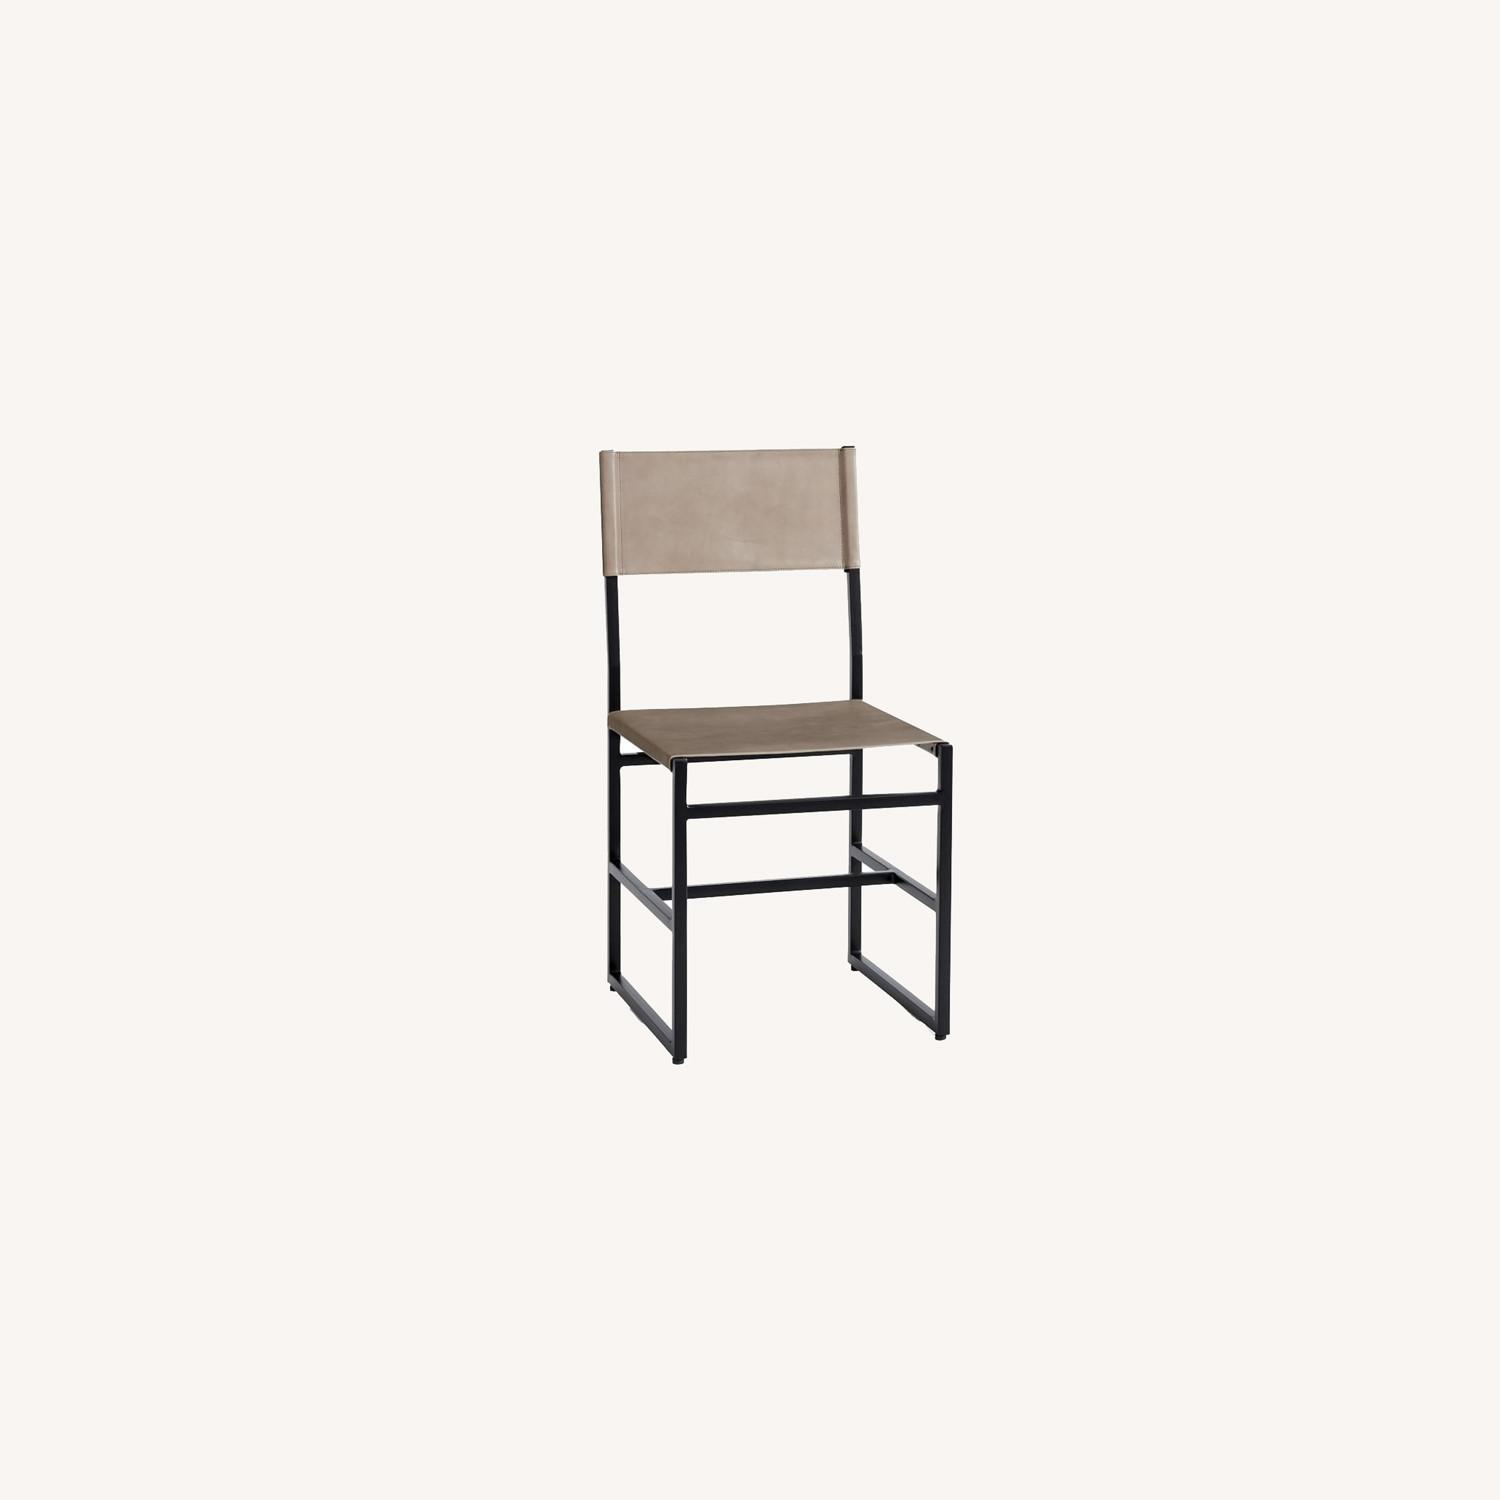 Pottery Barn Hardy Leather Dining Chair - image-0